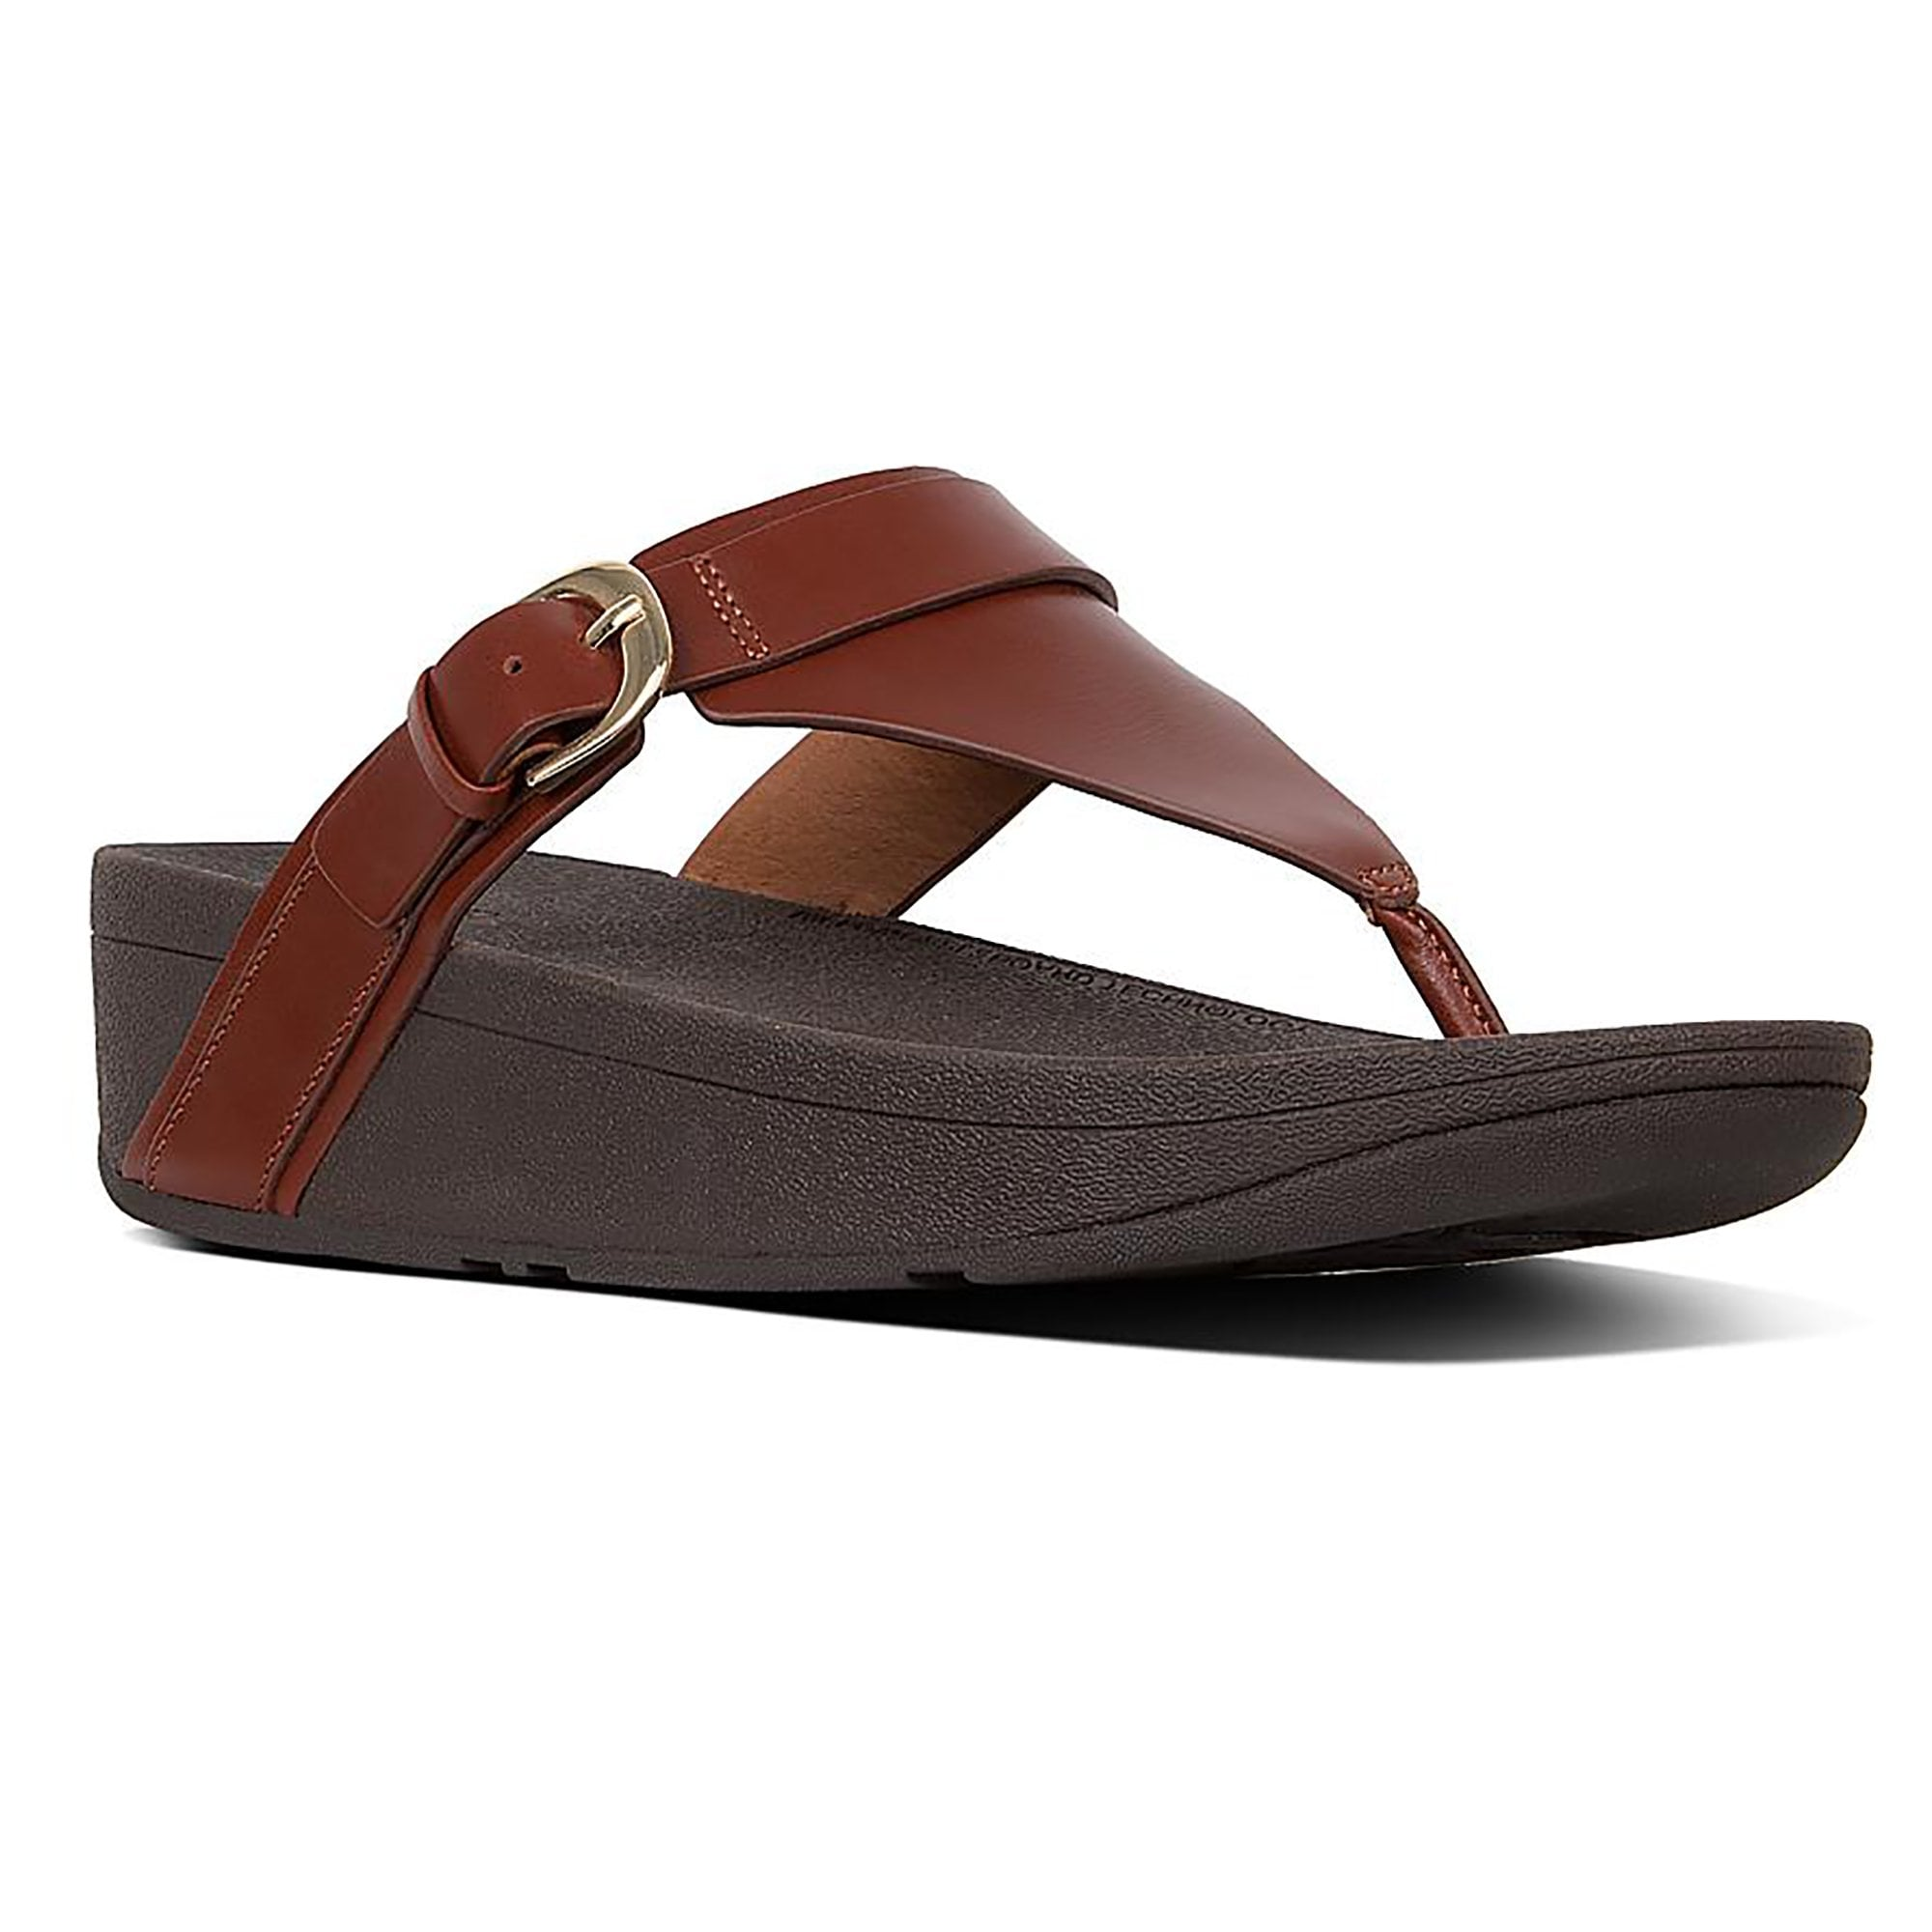 Fitflop Edit Leather Toe post Sandal